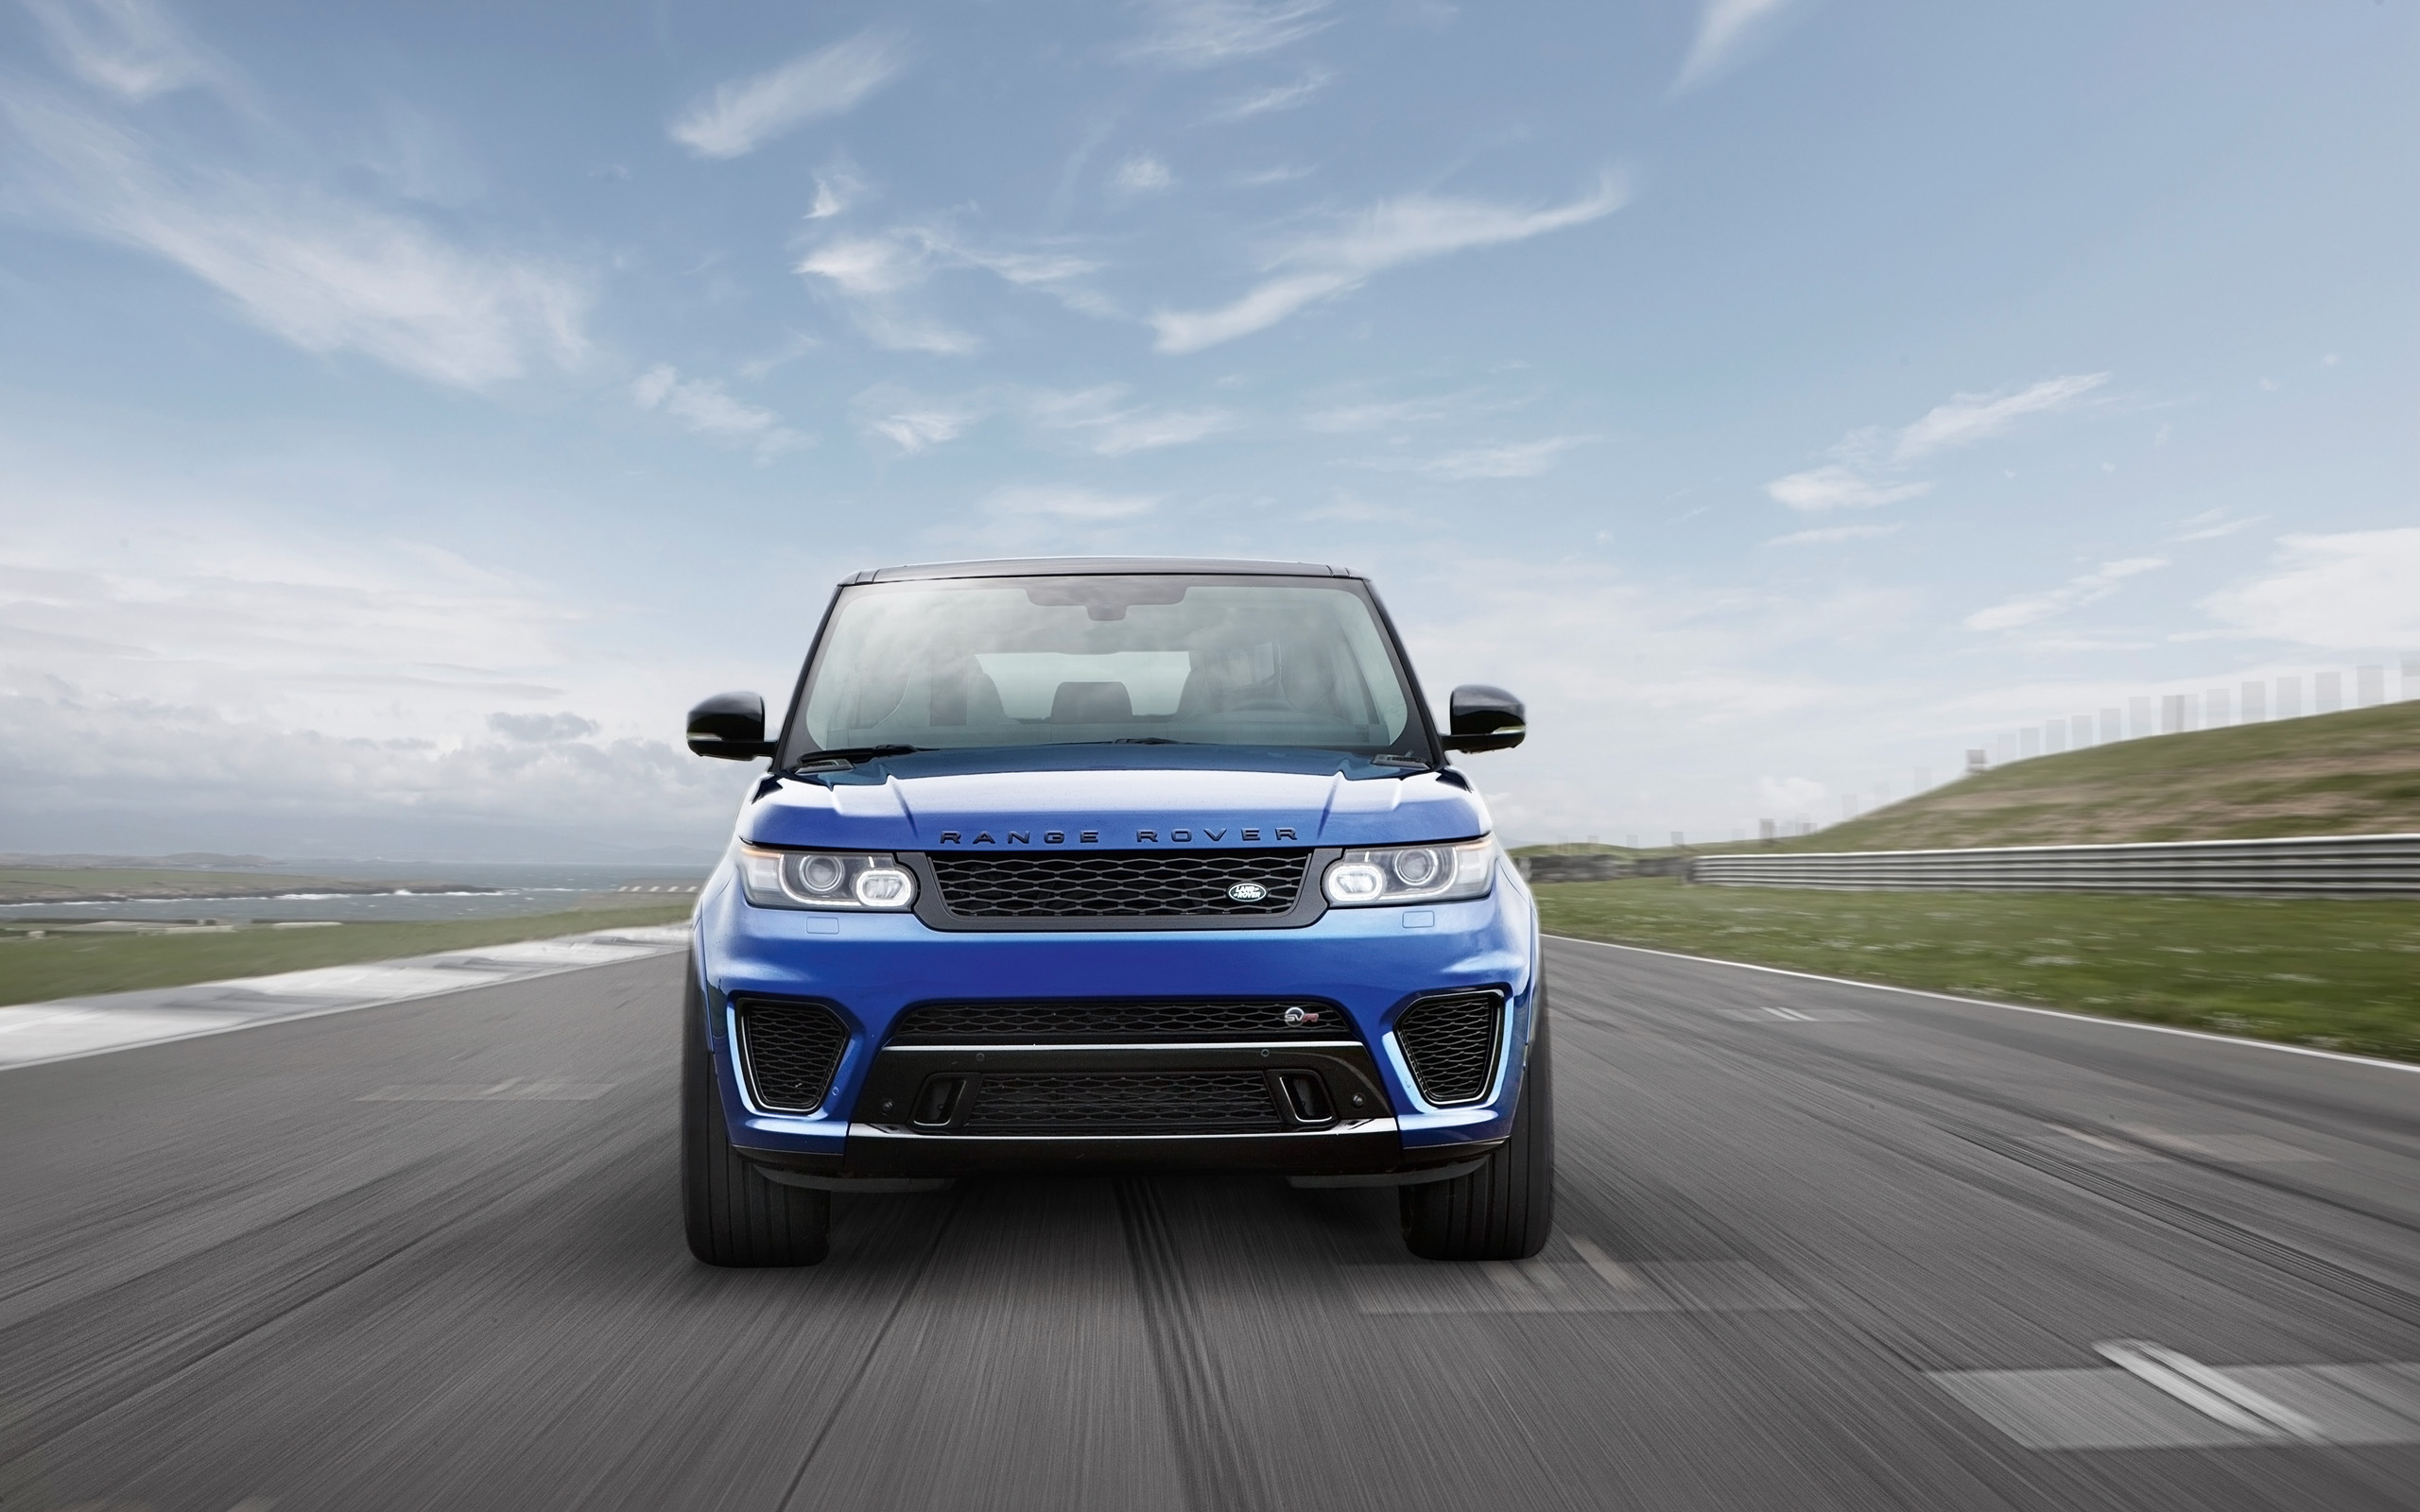 2015 land rover range rover sport svr 4 wallpaper hd car. Black Bedroom Furniture Sets. Home Design Ideas